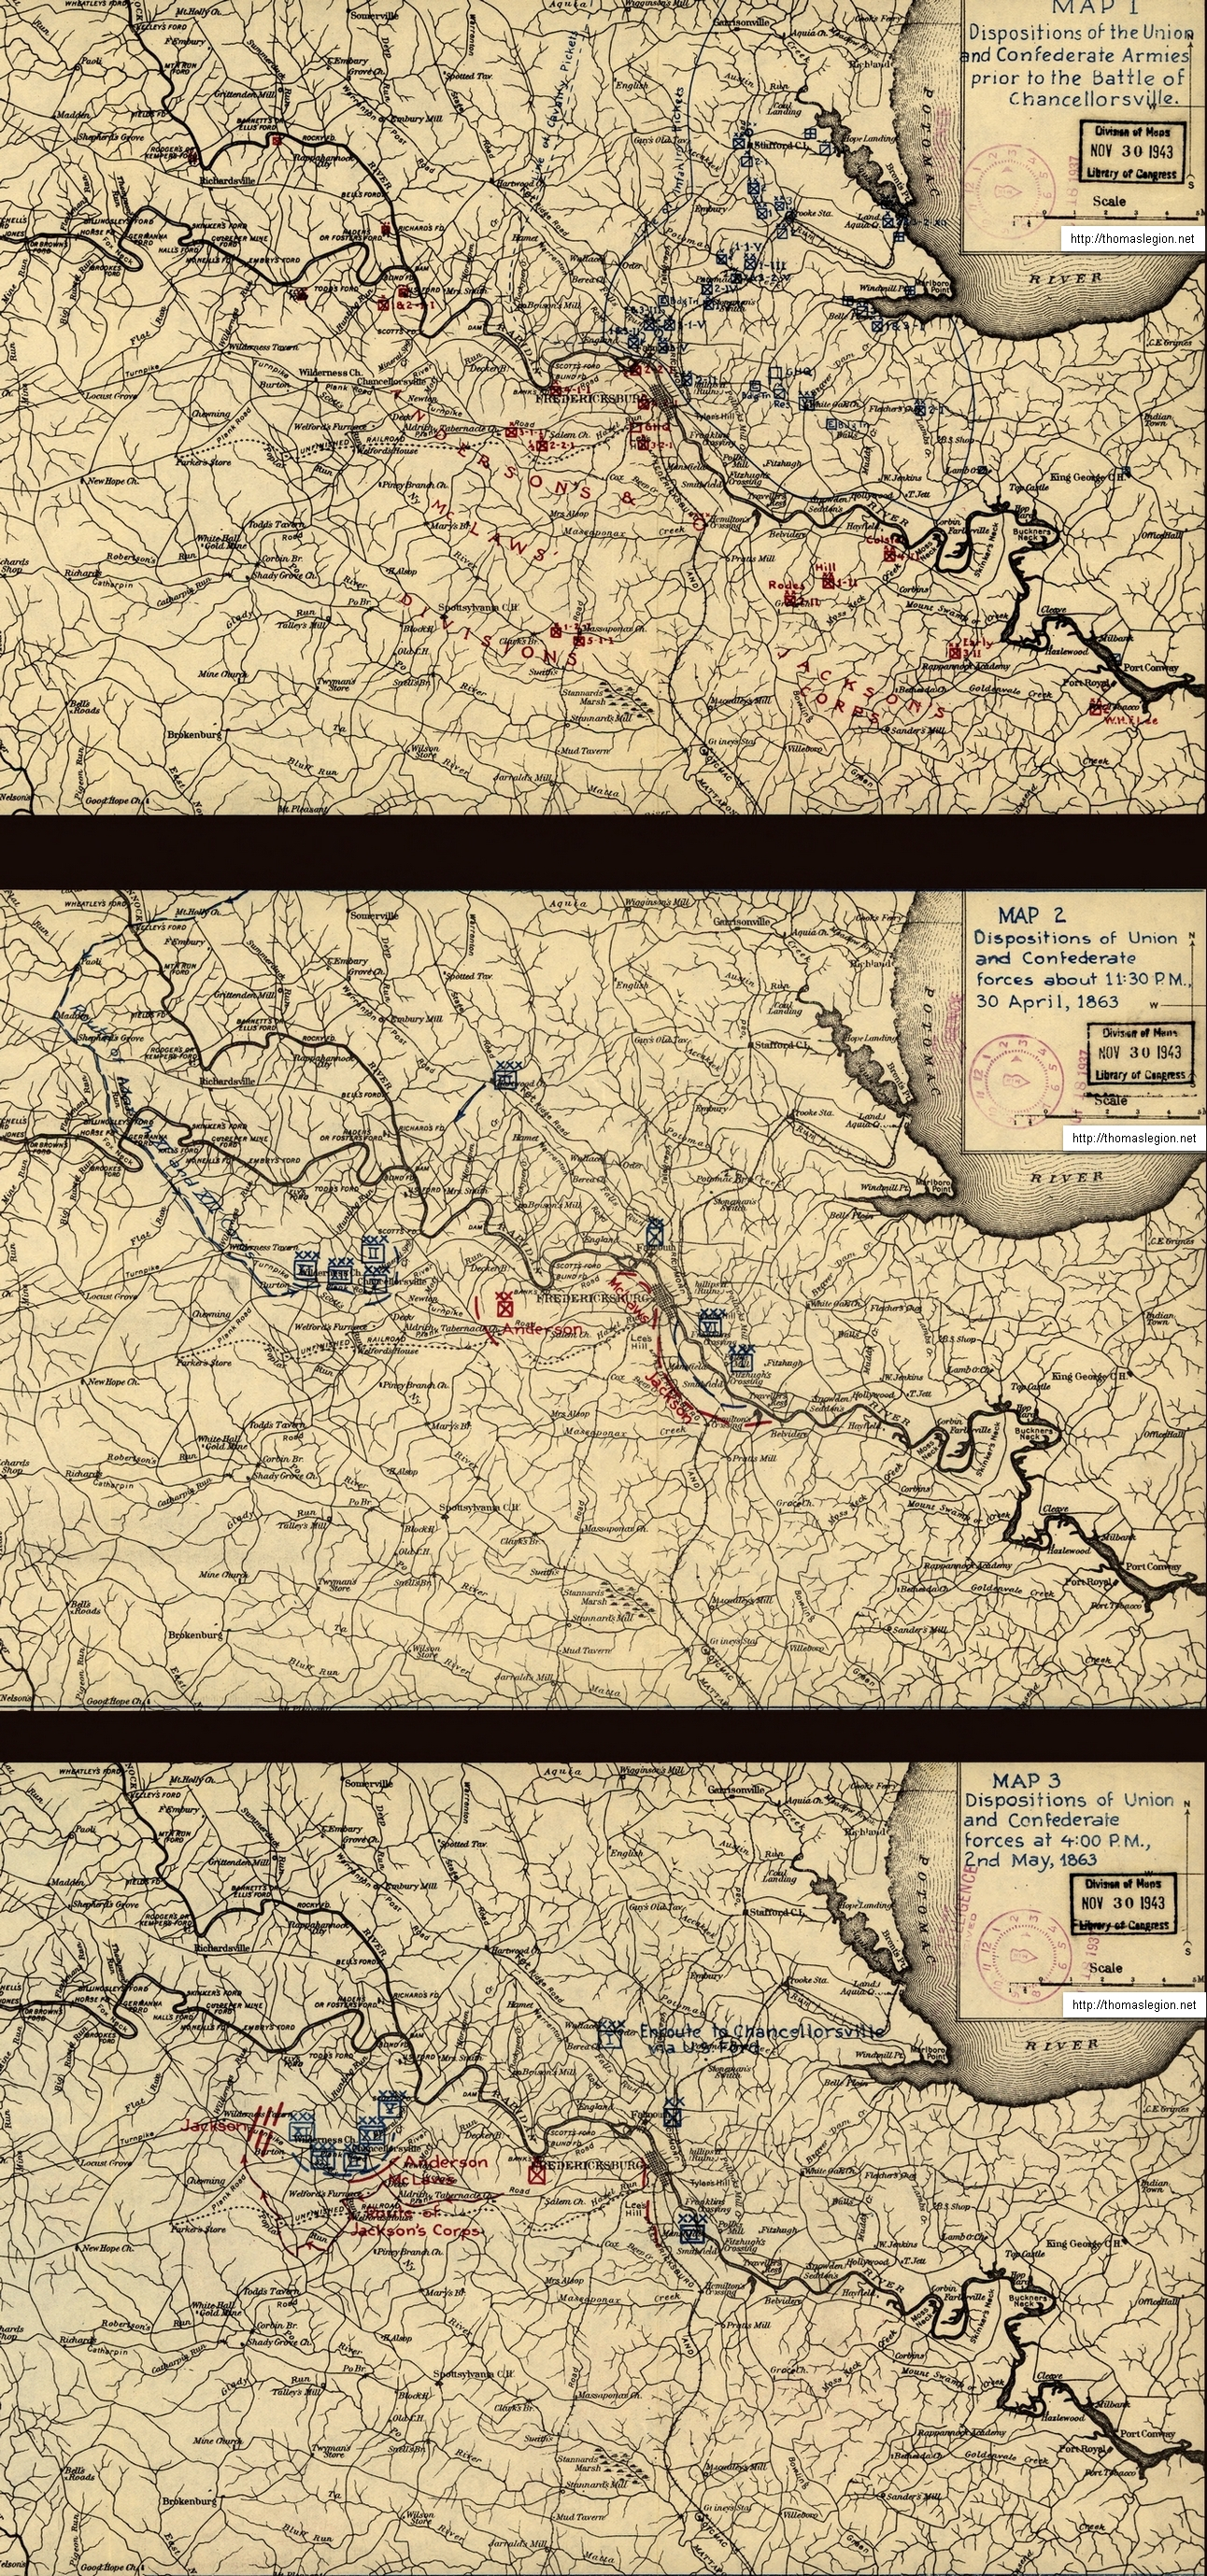 Civil War era Chancellorsville Battlefield Map.jpg